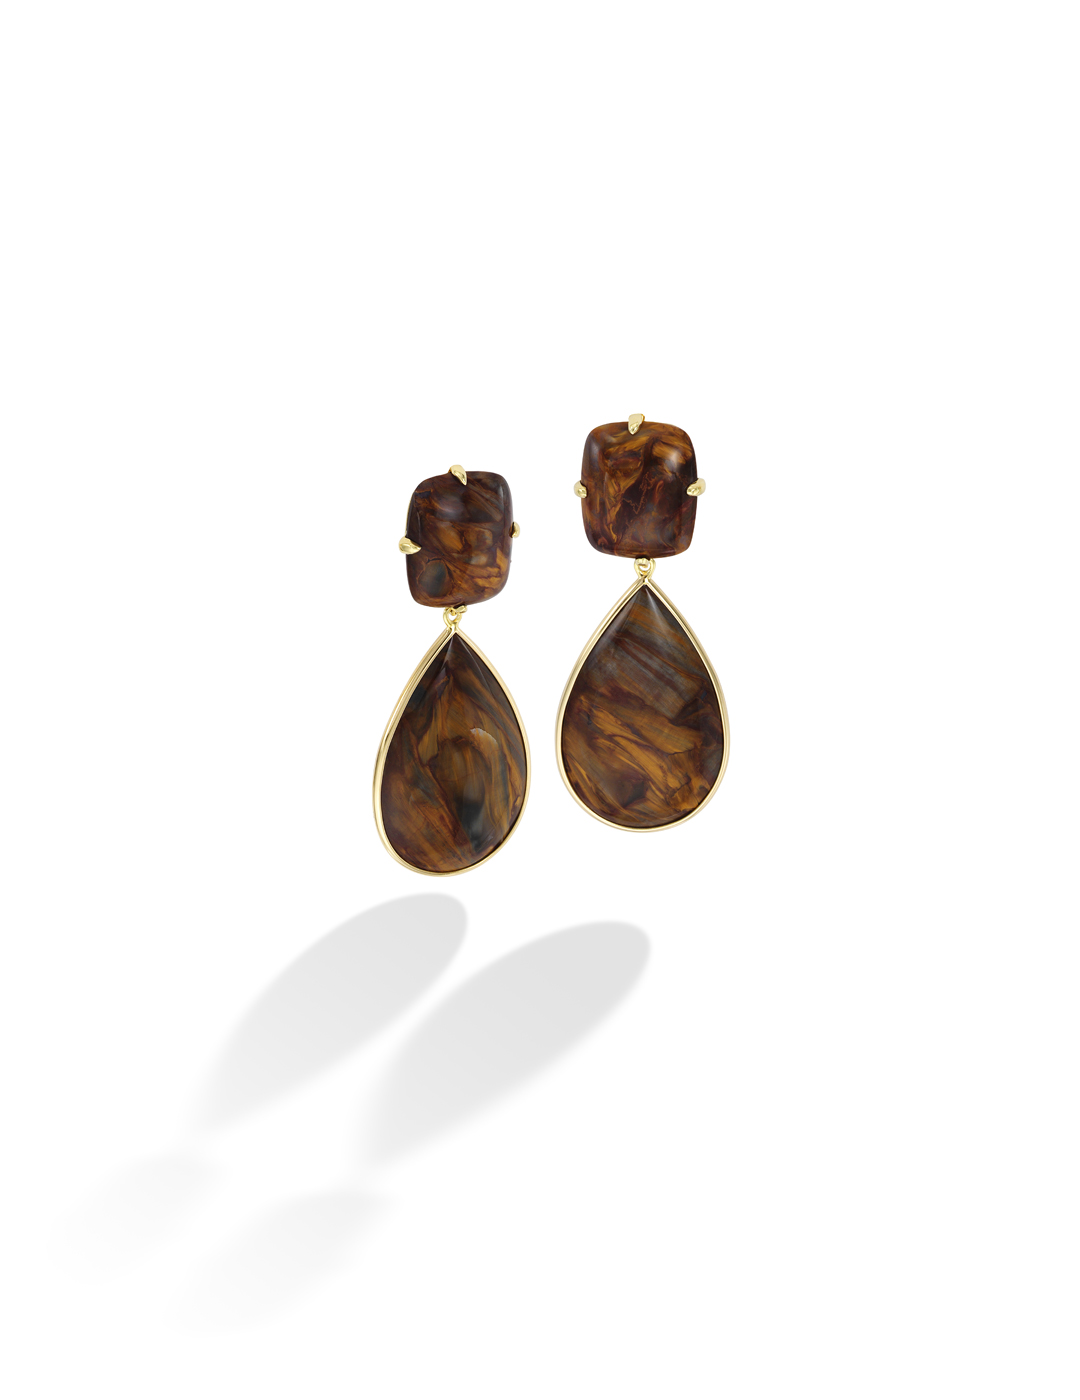 mish_products_earrings_Roadster-BrwnPieter-ER-1